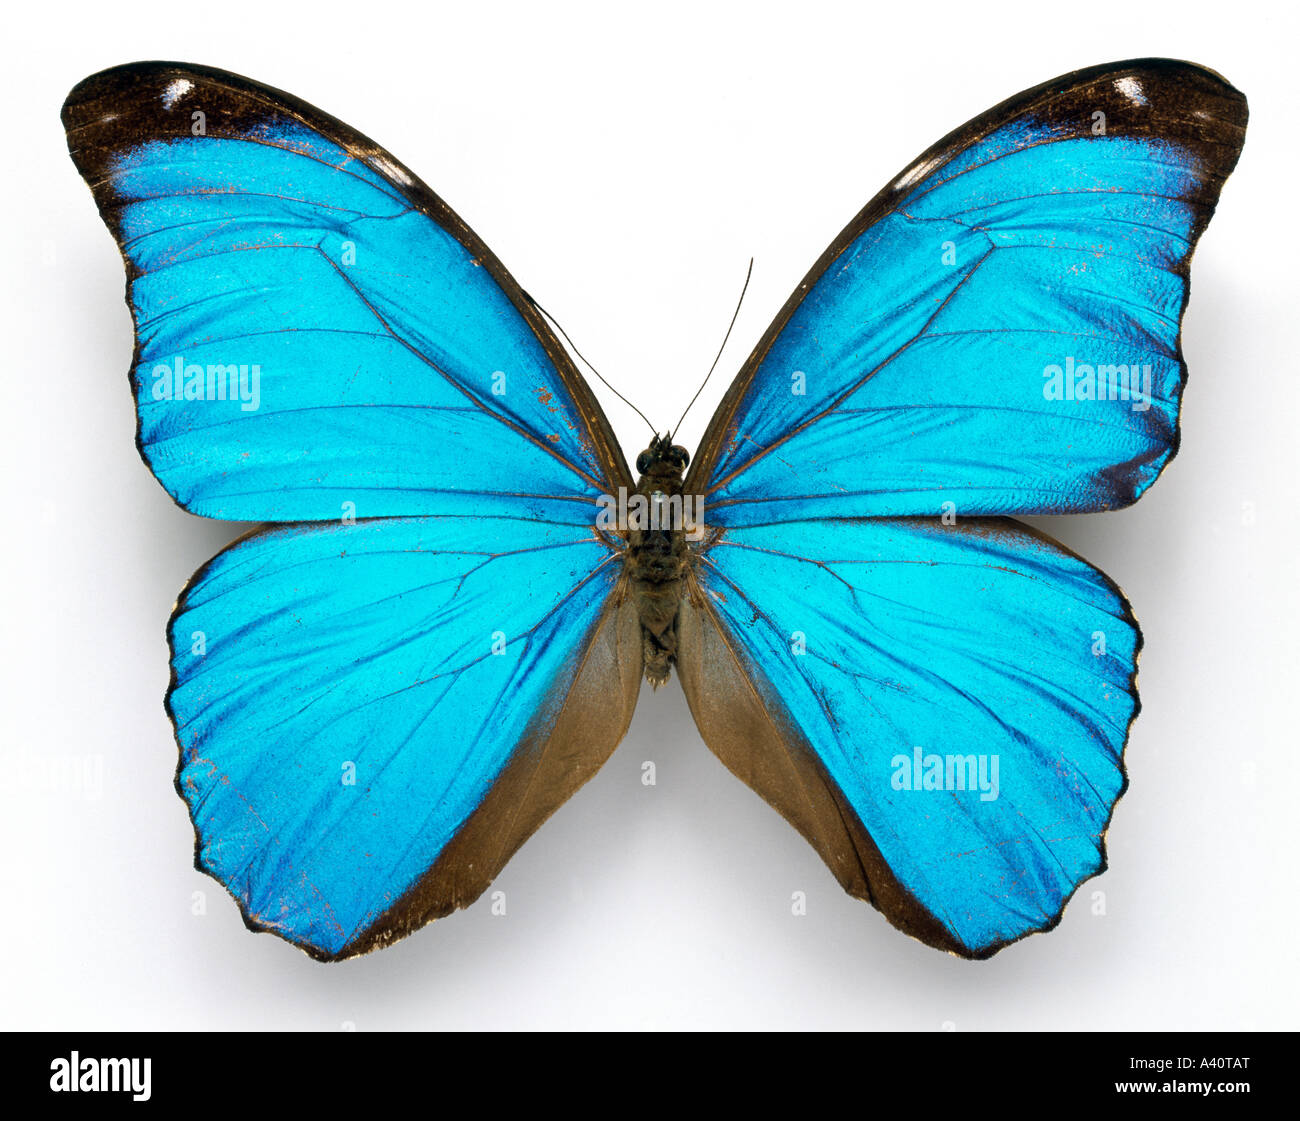 Morpho menelaus Cramer's blue butterfly Photo Stock